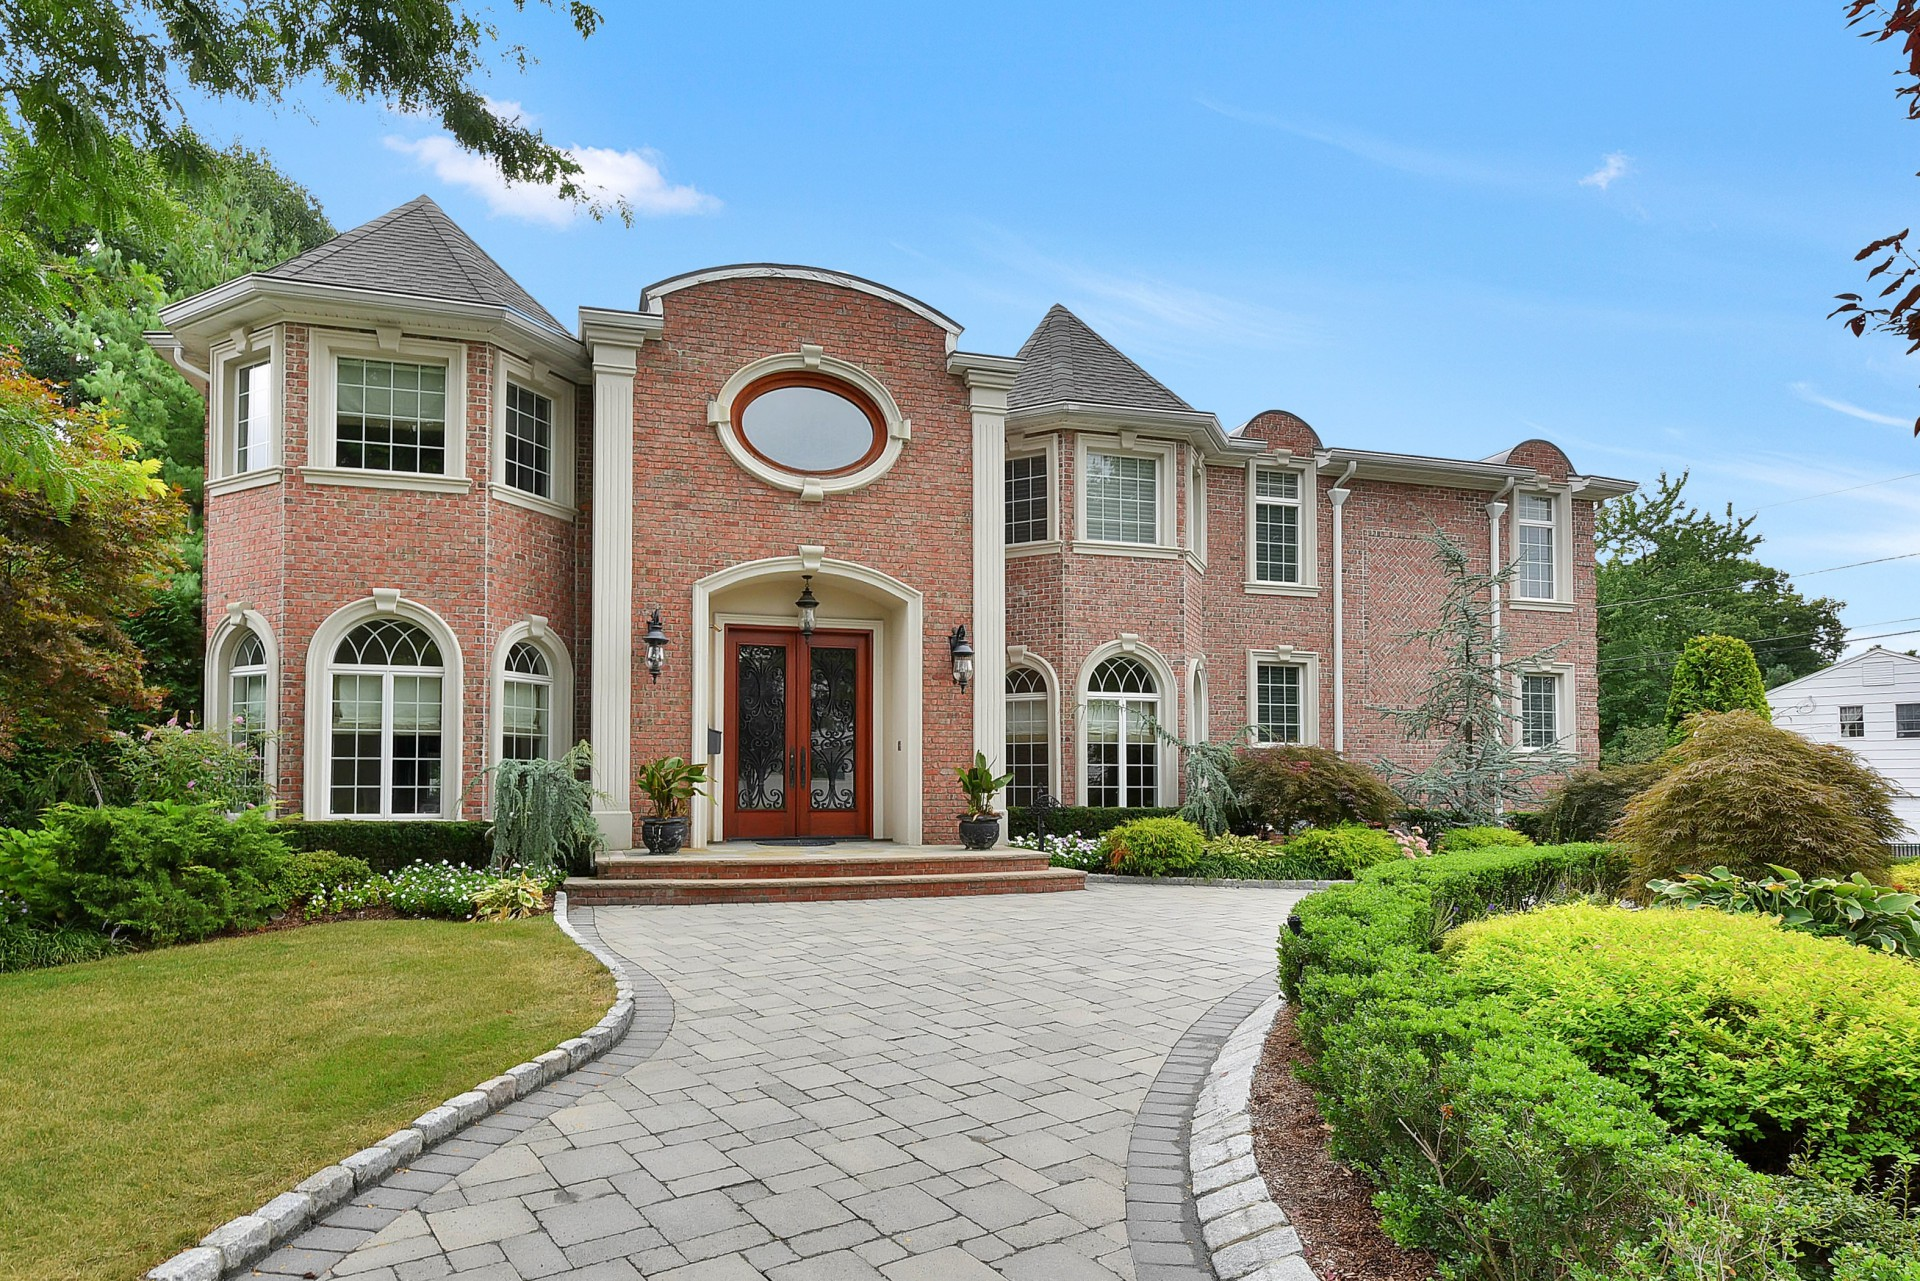 Single Family Home for Sale at Custom Built Colonial 4 Vine St Englewood Cliffs, New Jersey, 07632 United States